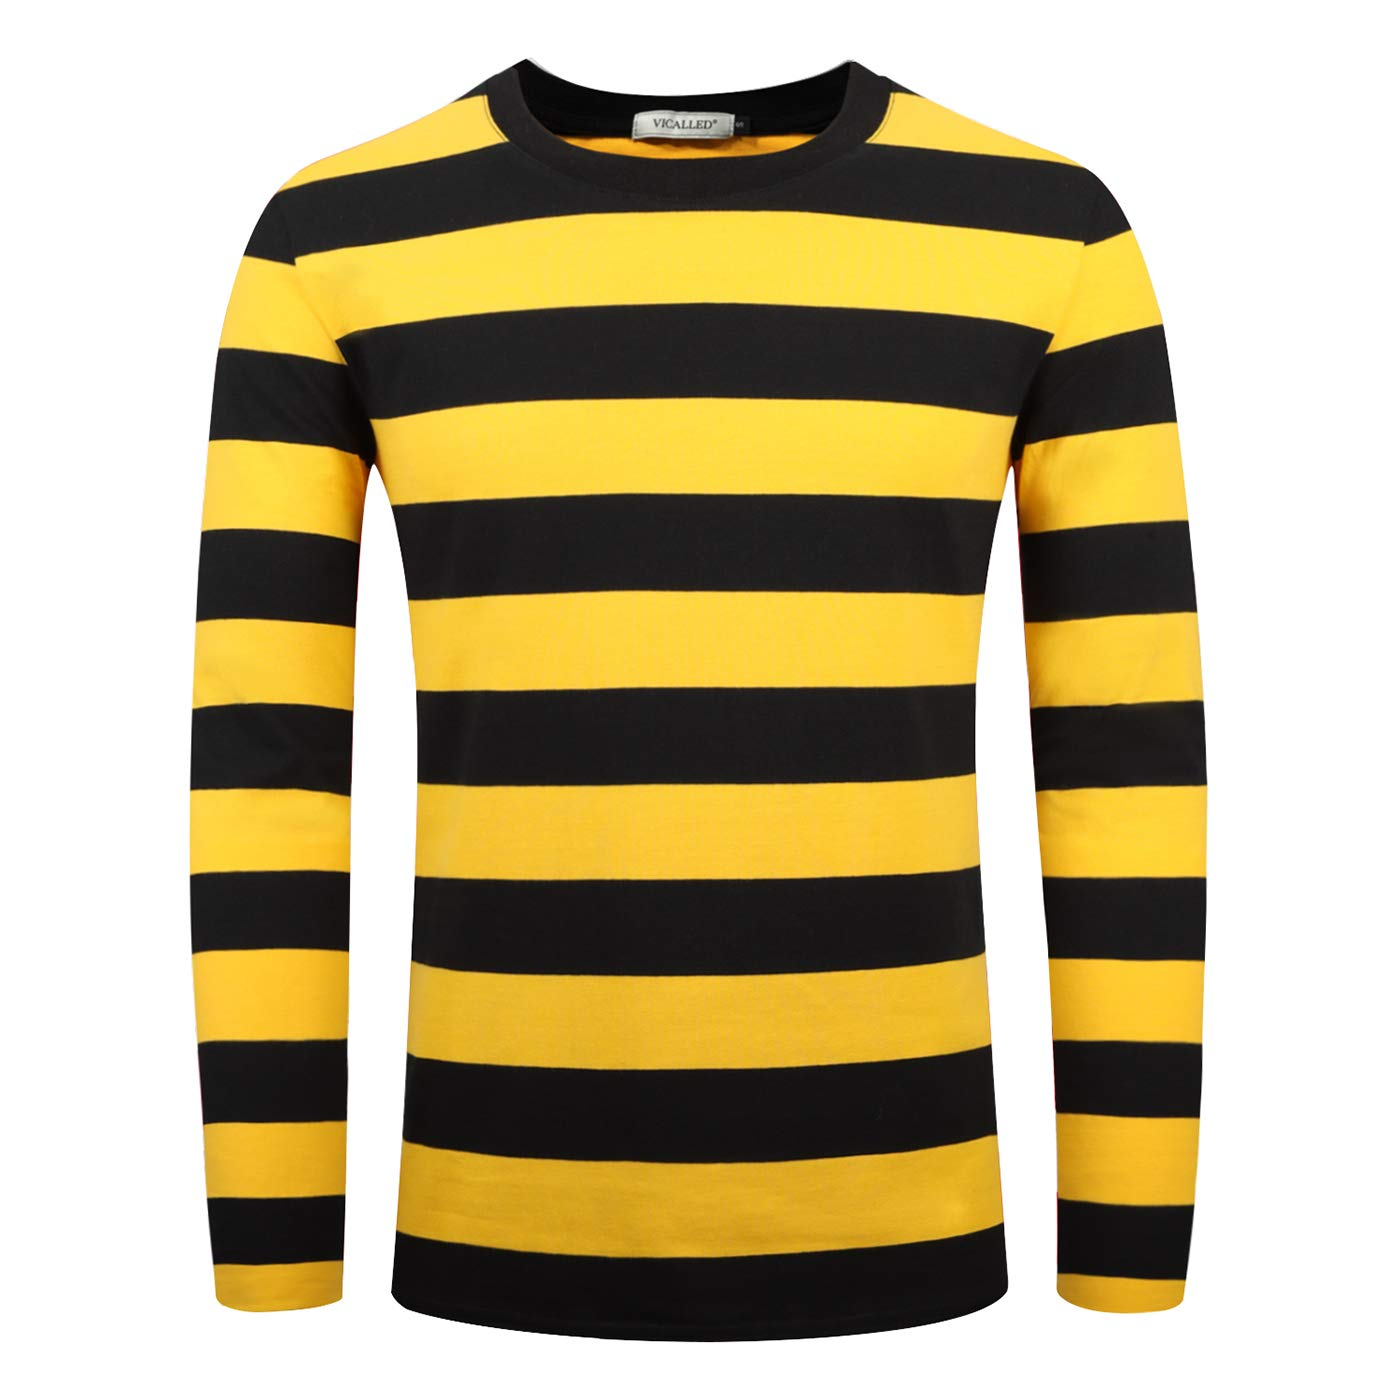 VICALLED Mens Basic Striped T-Shirt Long Sleeve Casual Pullover Crew Neck Cotton Novelty T-Shirt